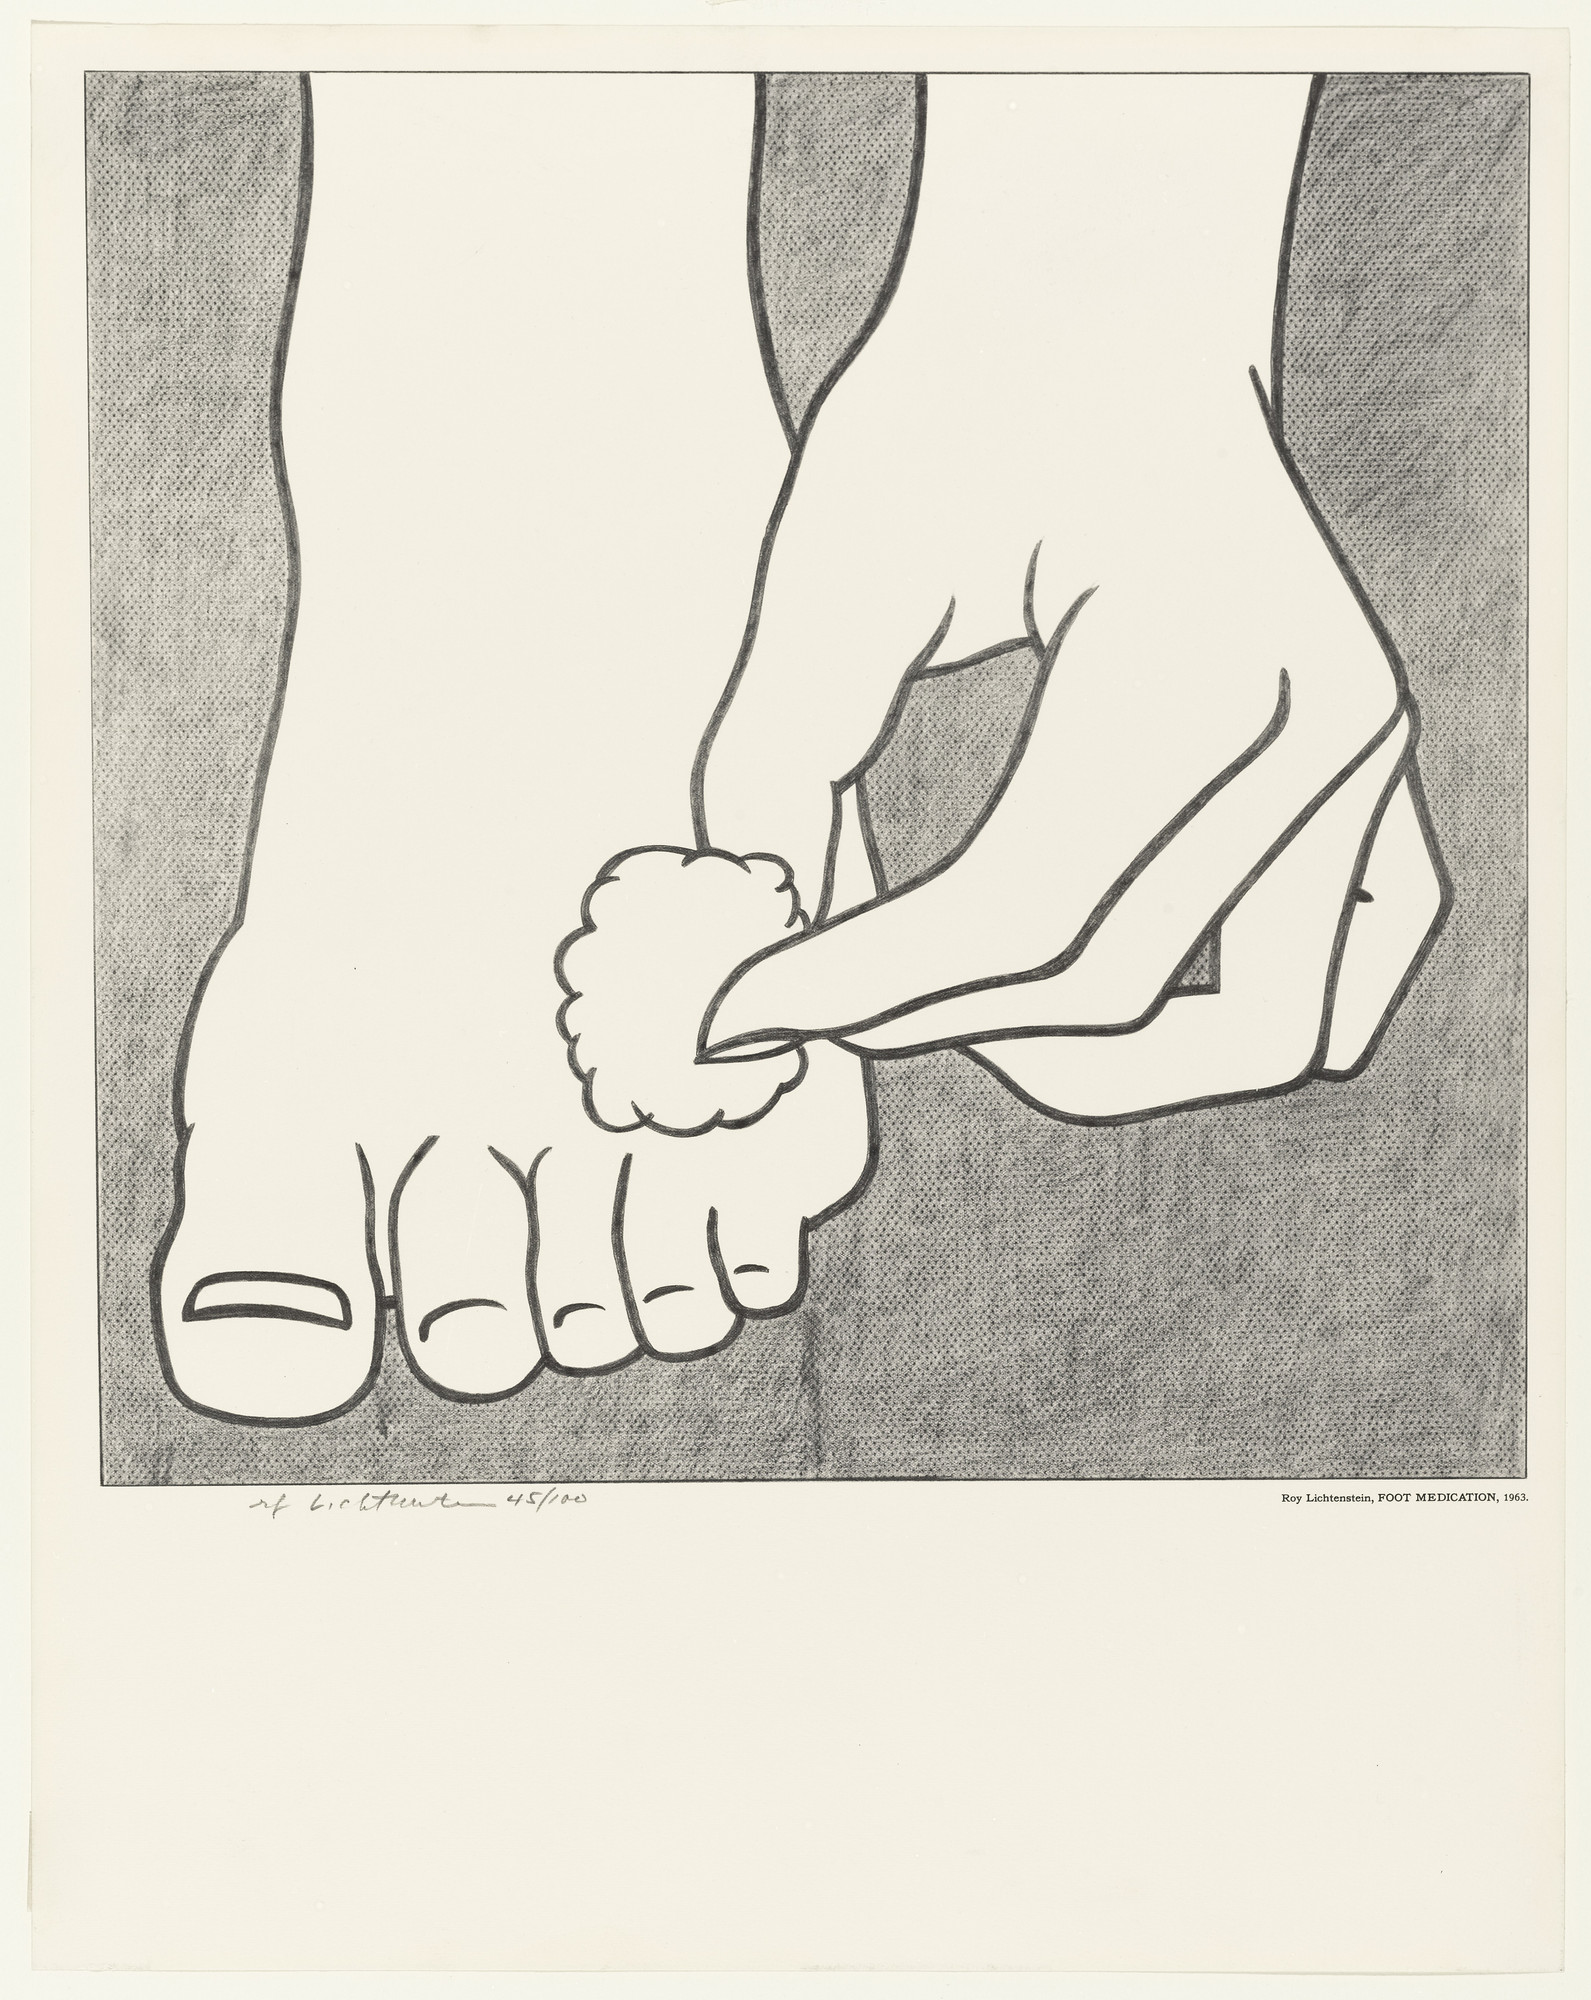 Roy Lichtenstein. Foot Medication. 1963